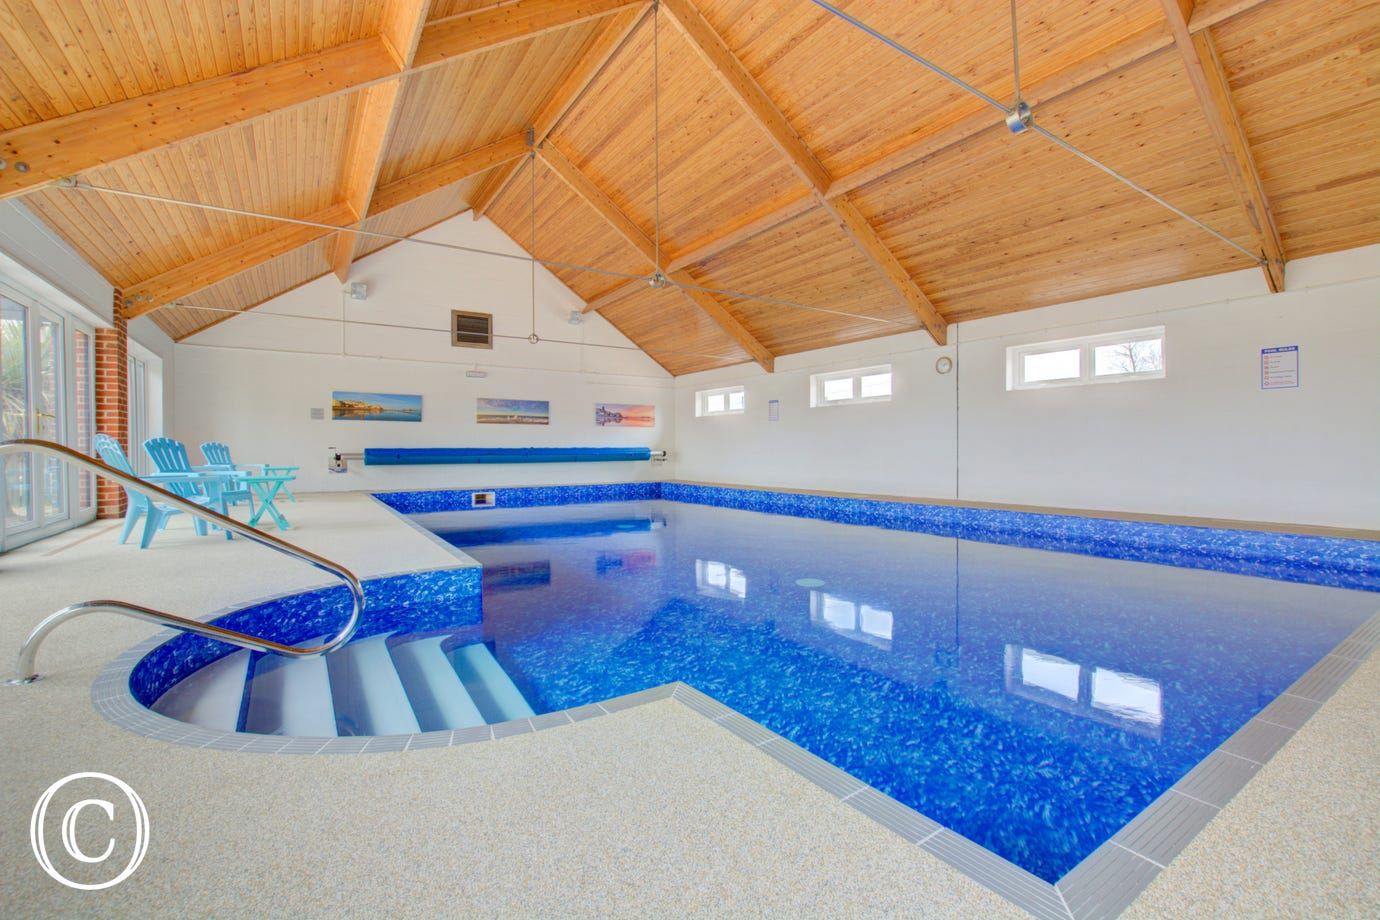 This poperty benefits from the use of this communal swimming pool